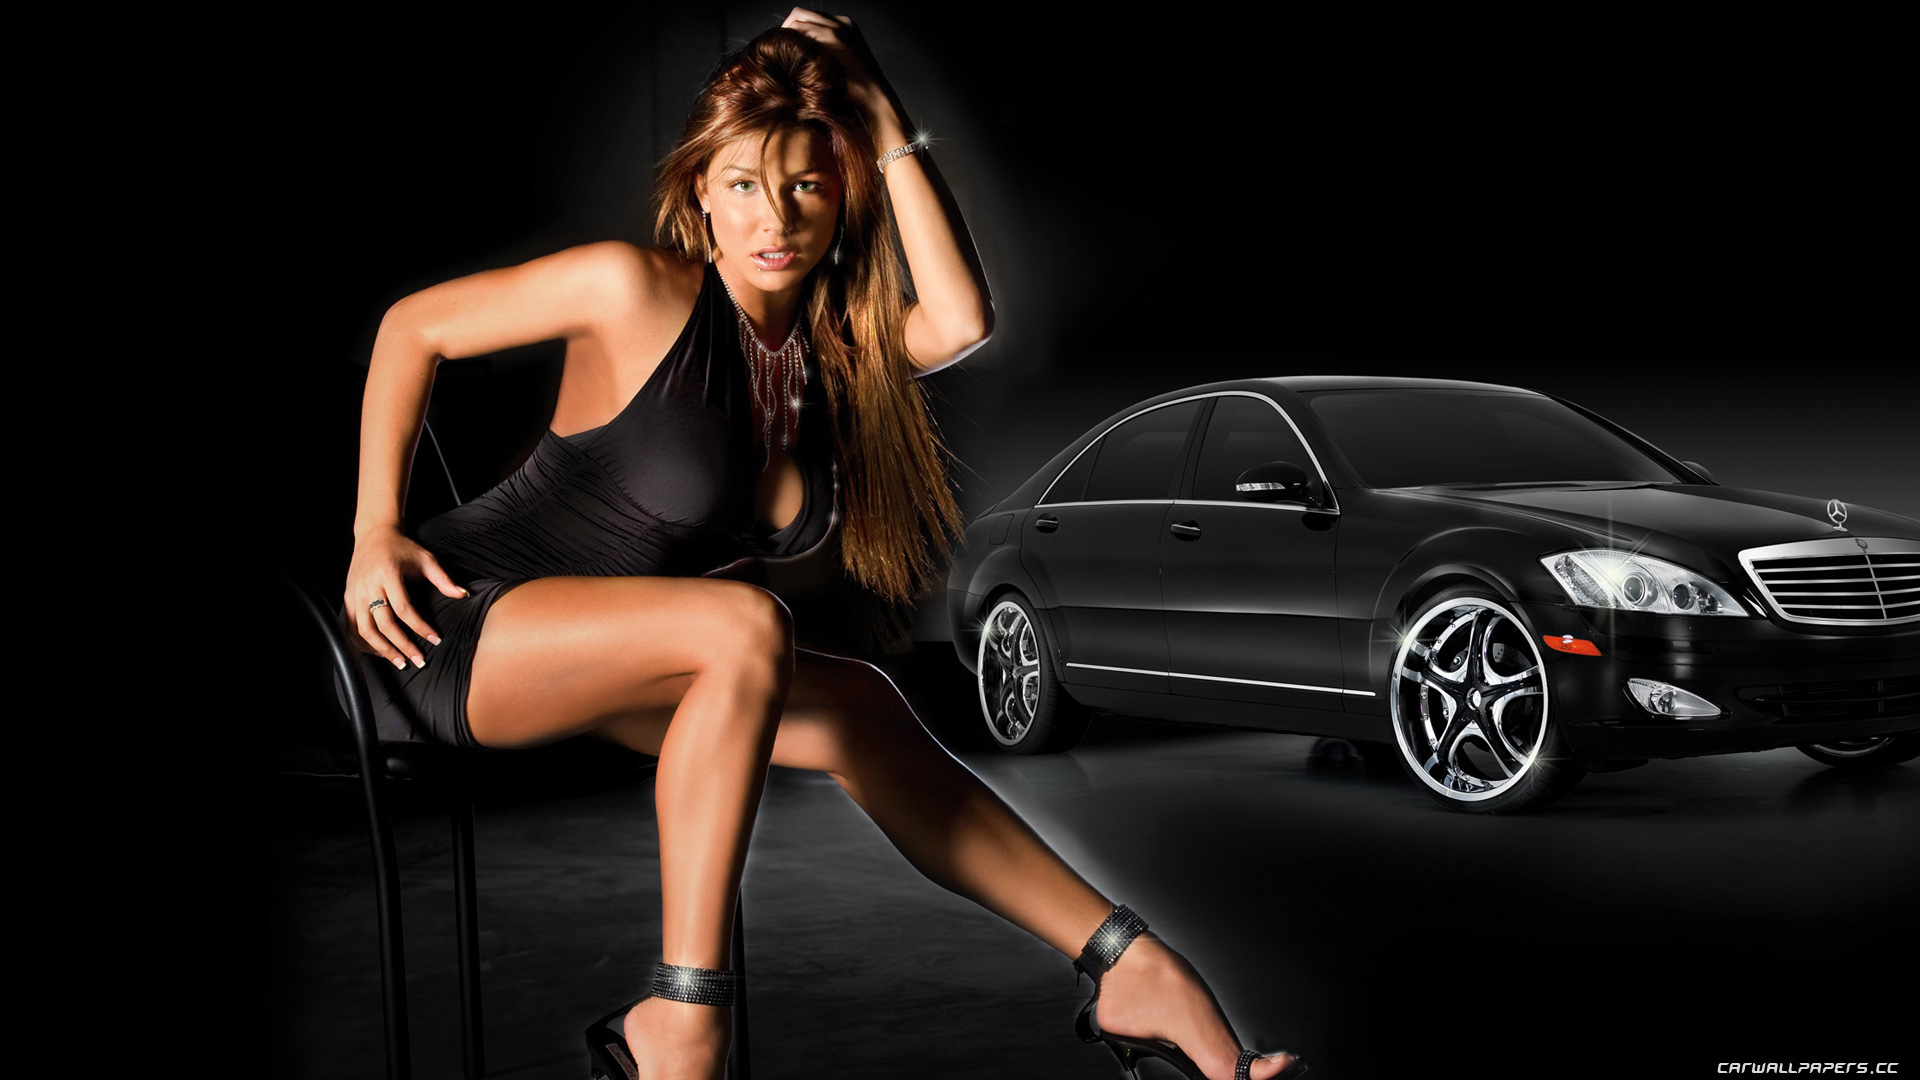 Download Full Size Gto Girls Amp Cars Wallpaper Num 17 1024 X